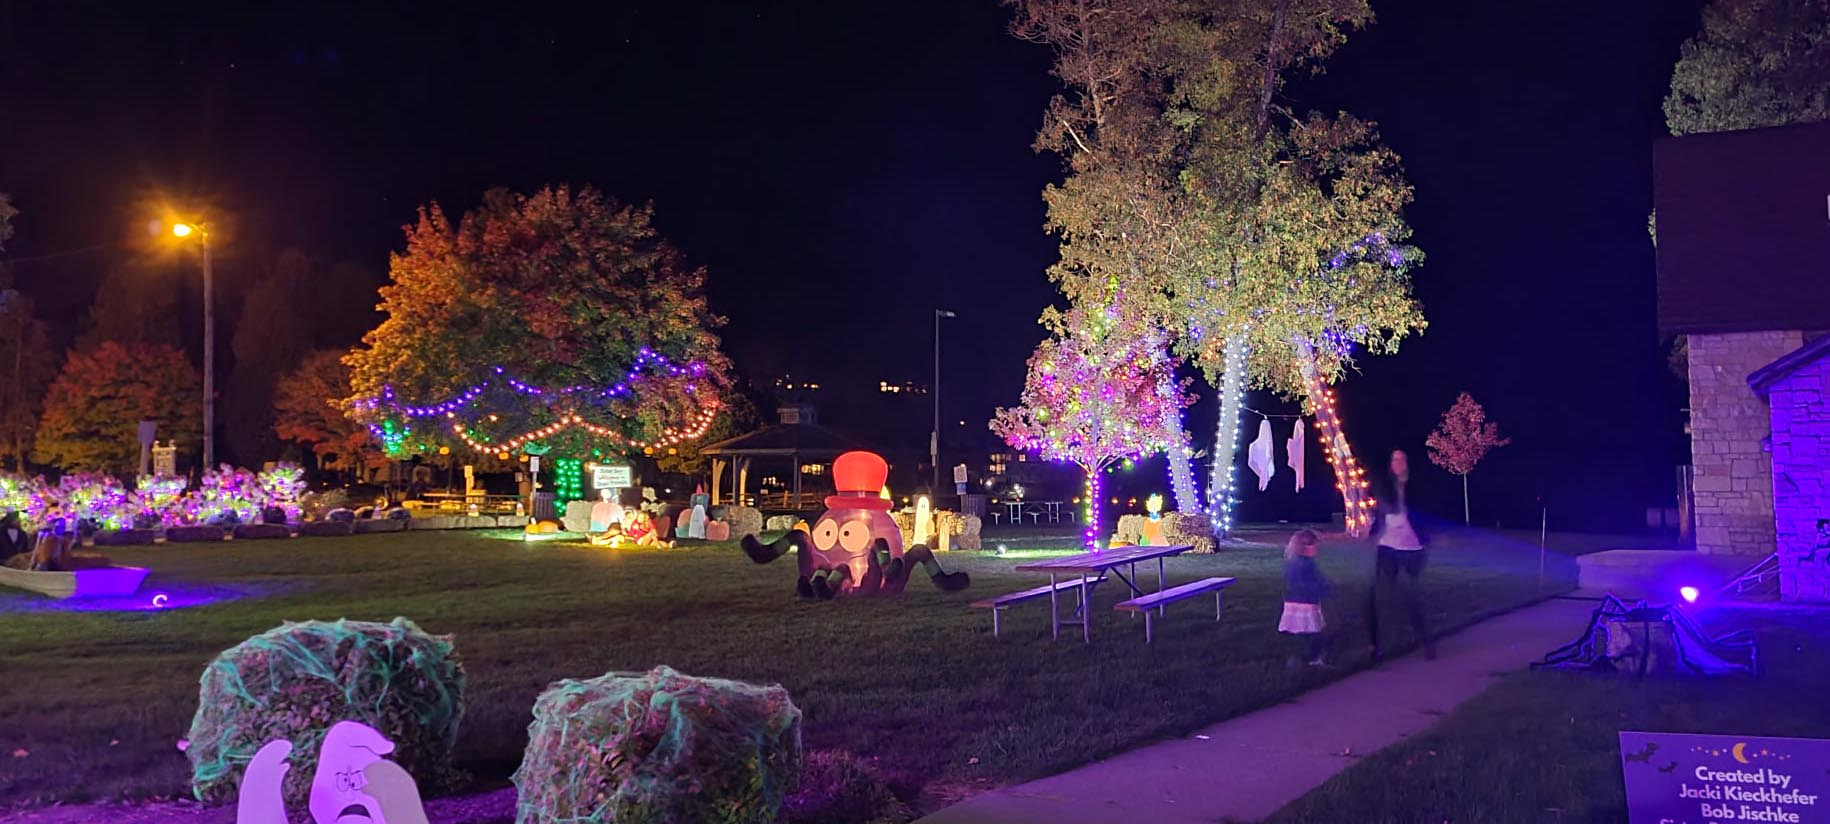 Outdoor park decorated with lights and Halloween decorations.